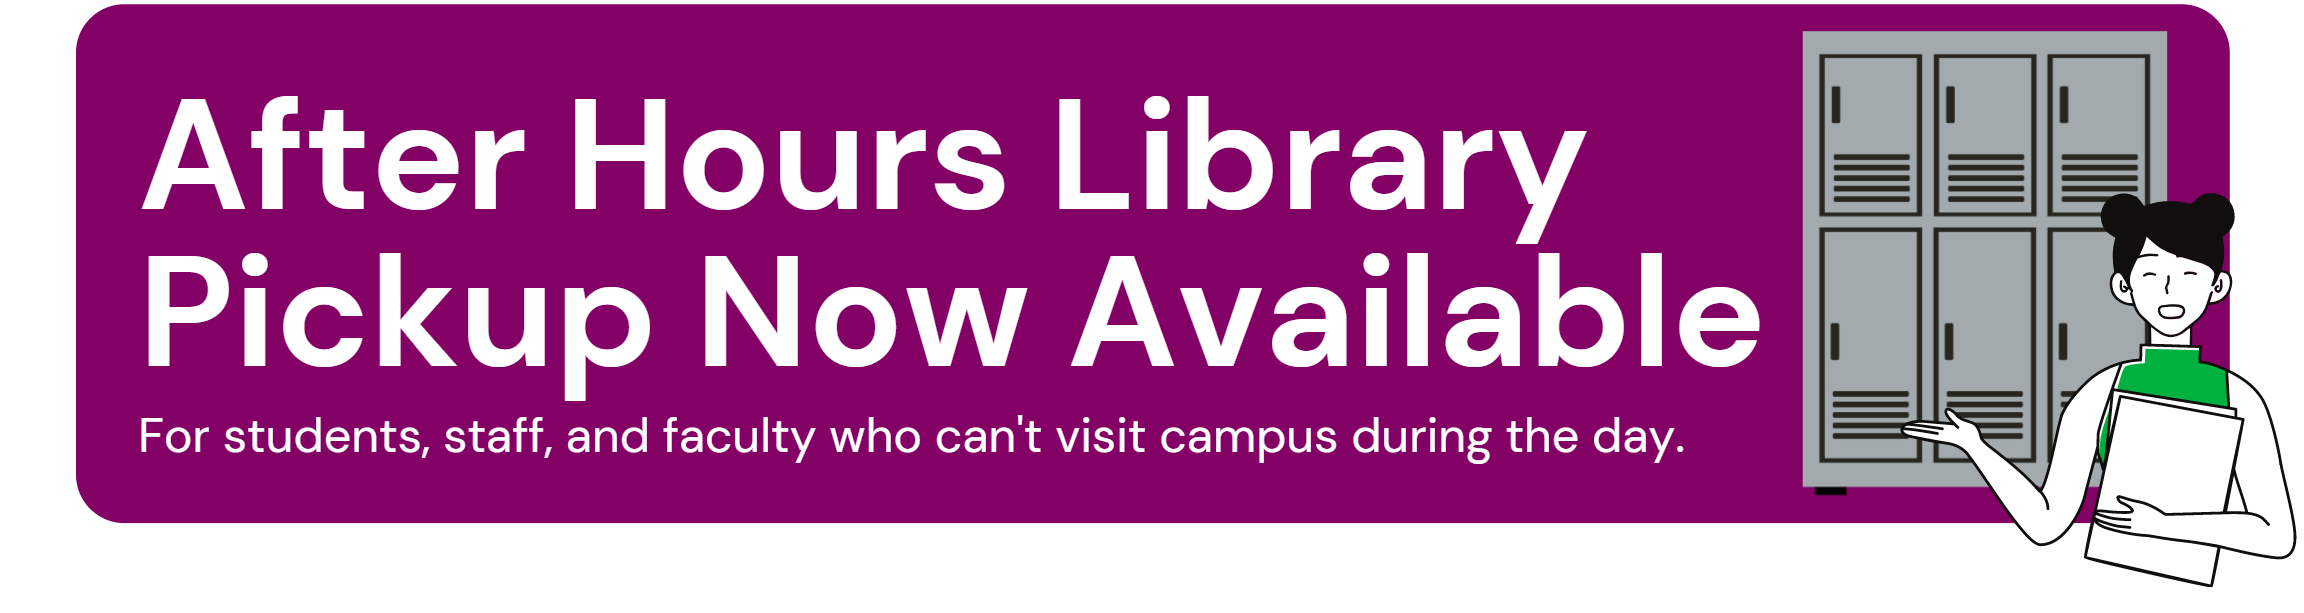 After-hours library pickup now available for students, staff, and faculty who can't visit campus during the day (white font on purple background) (Clipart lockers with student standing in front)